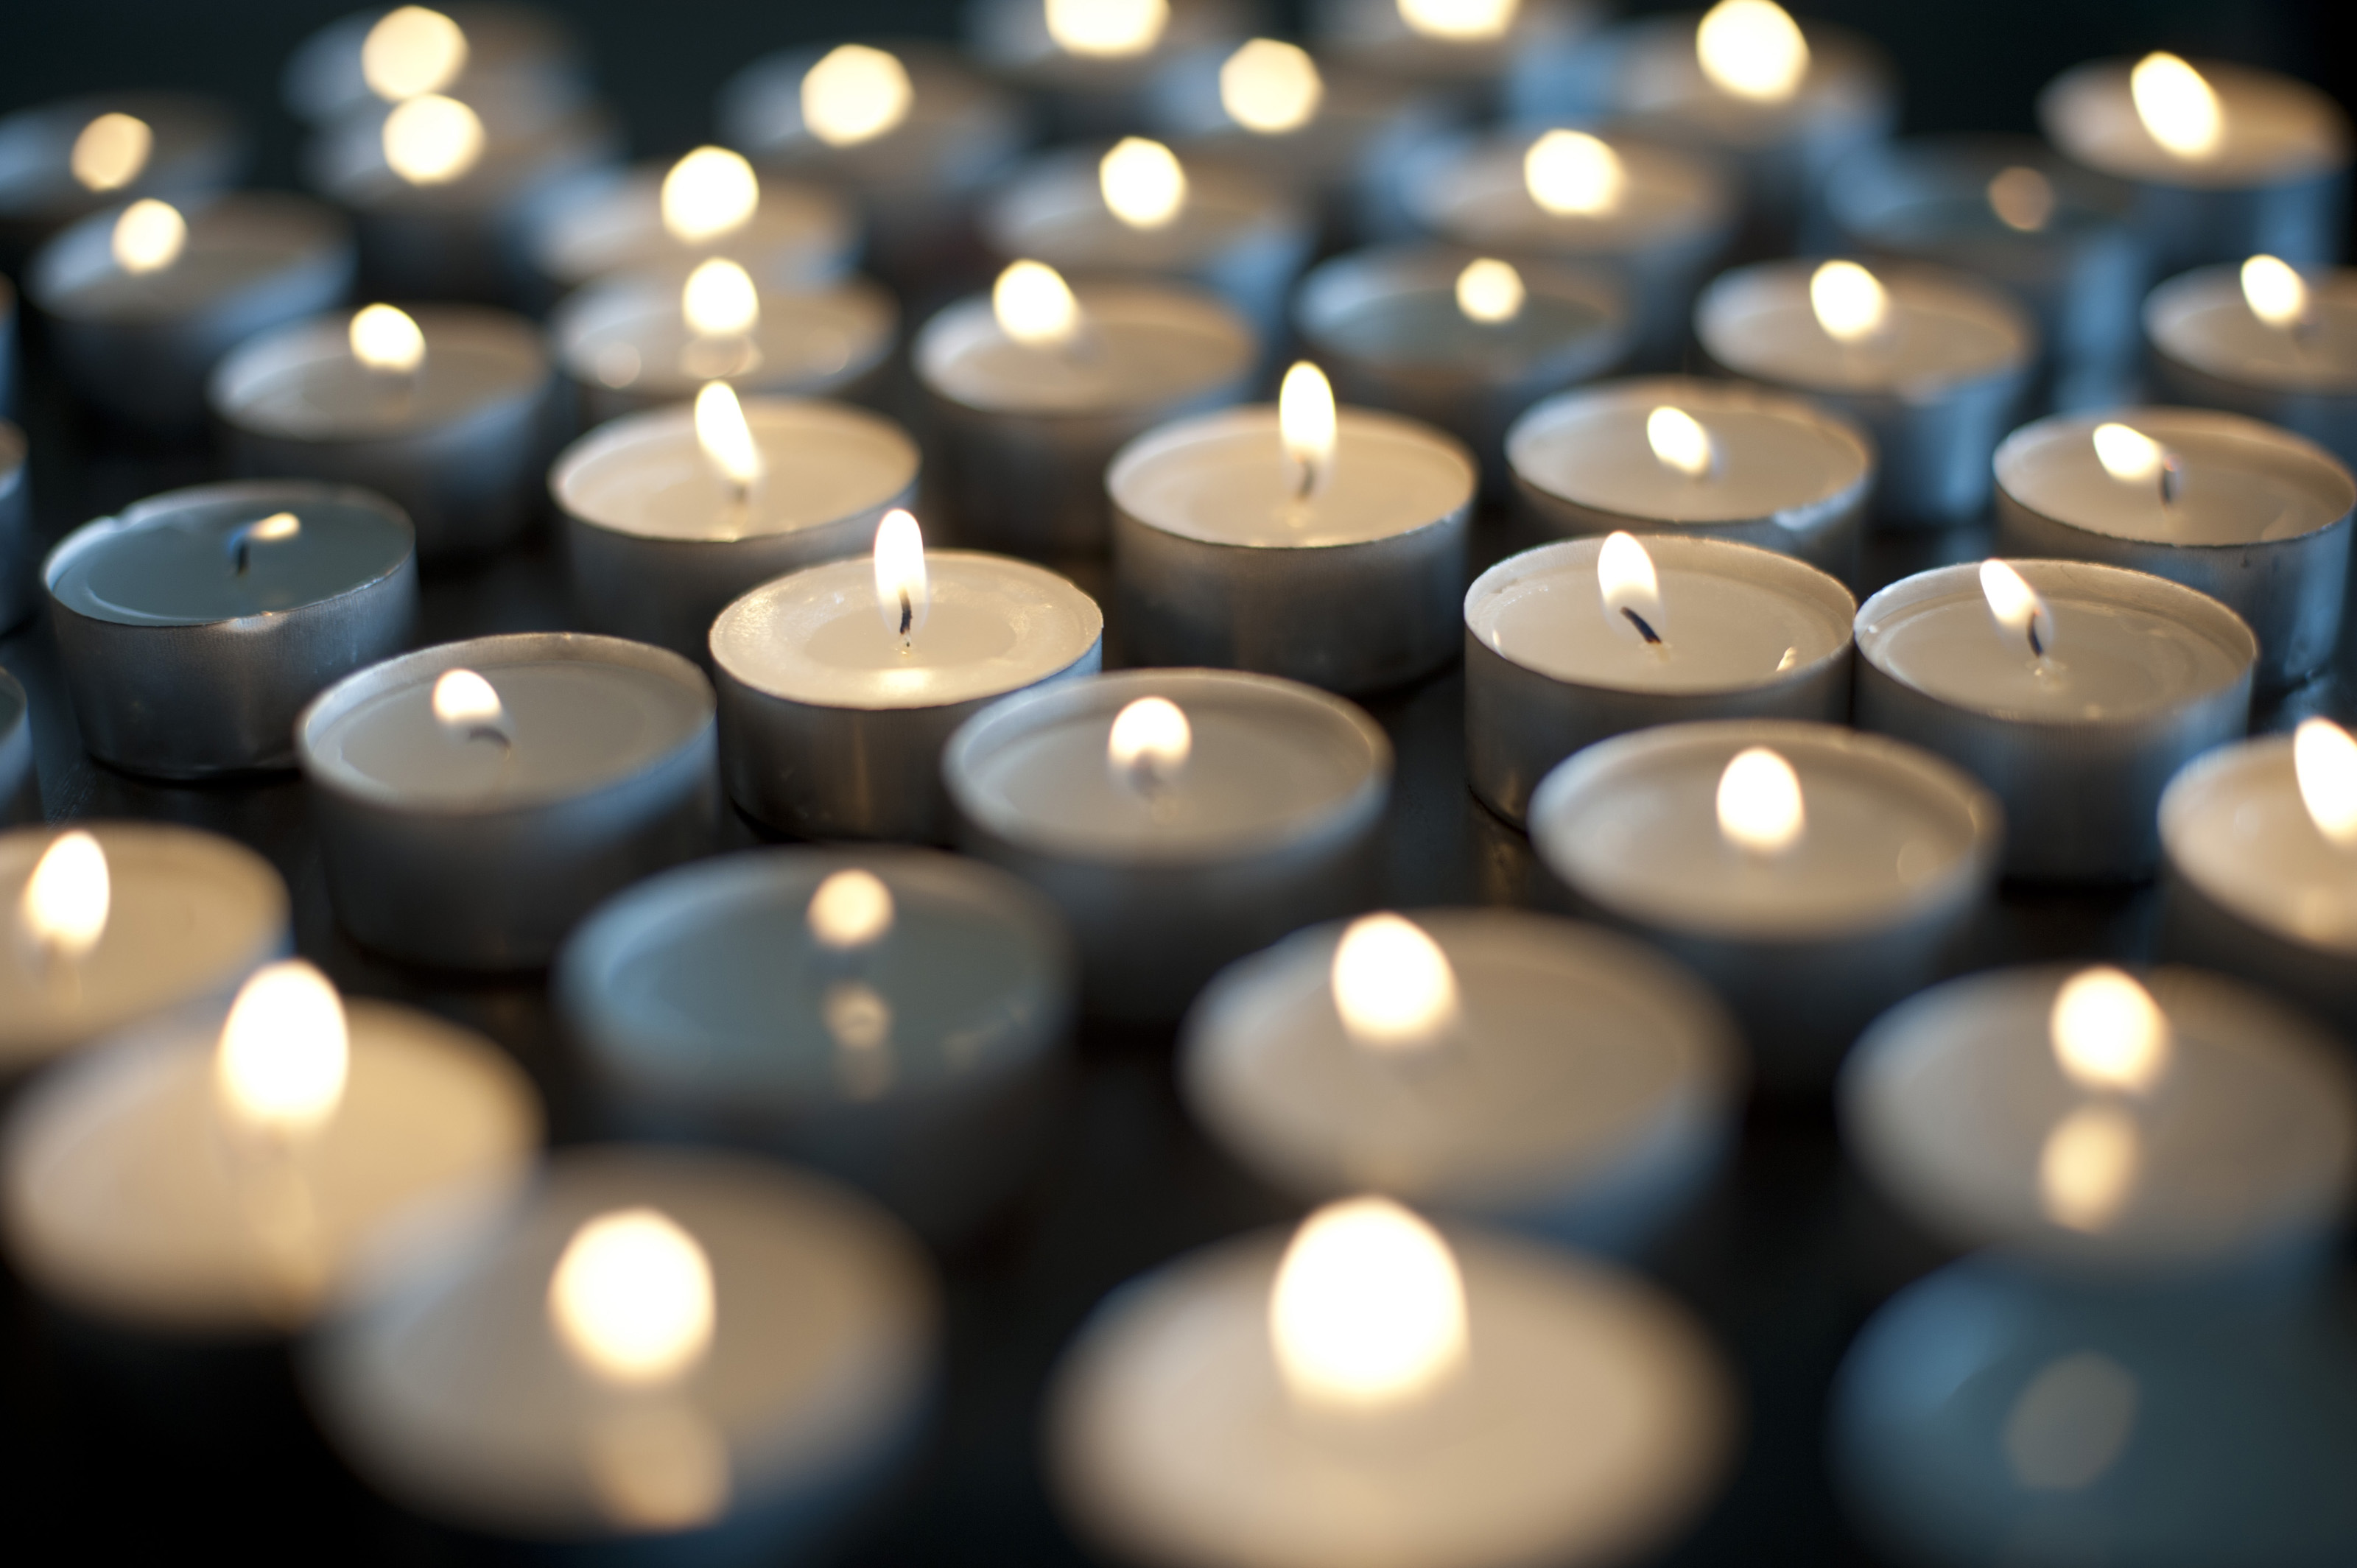 Flickering glowing Christmas candles-6368 | Stockarch Free Stock Photos